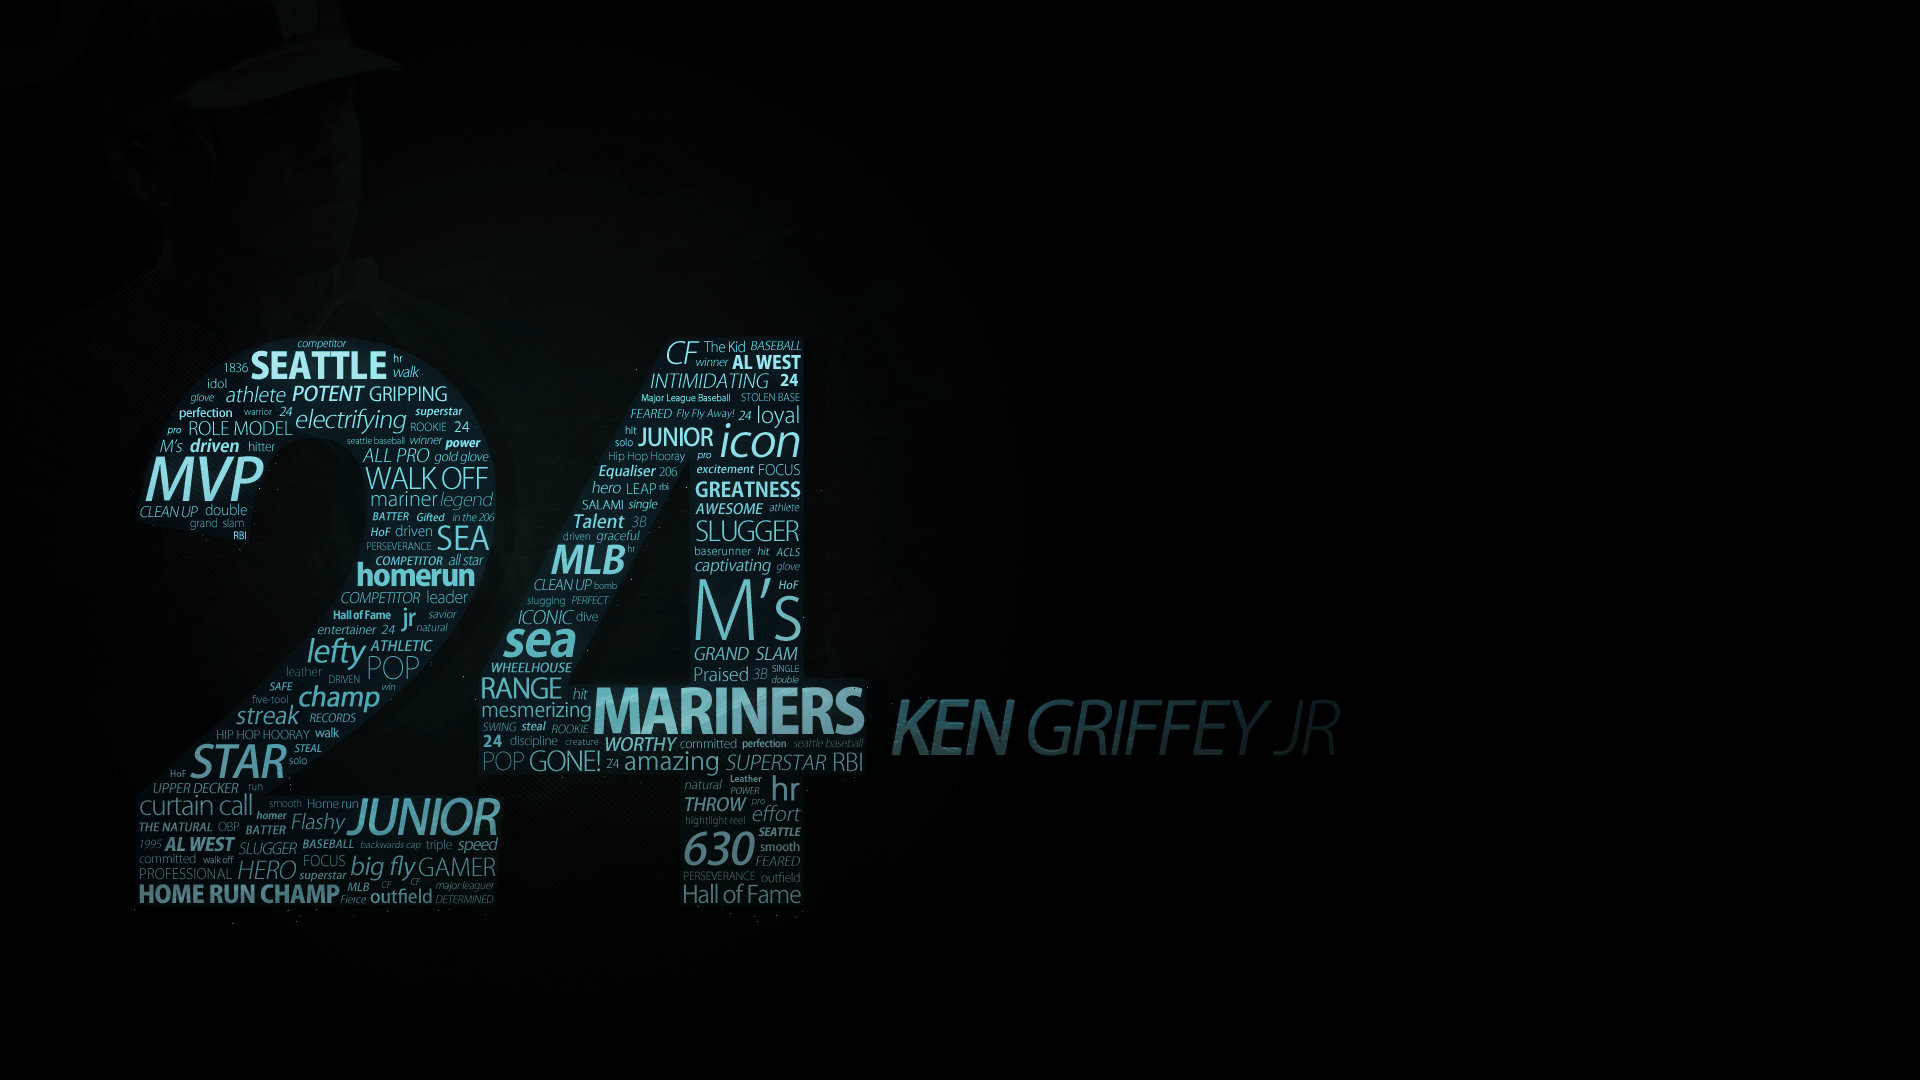 Does anyone have a <b>Mariners background</b> with the schedule included ...